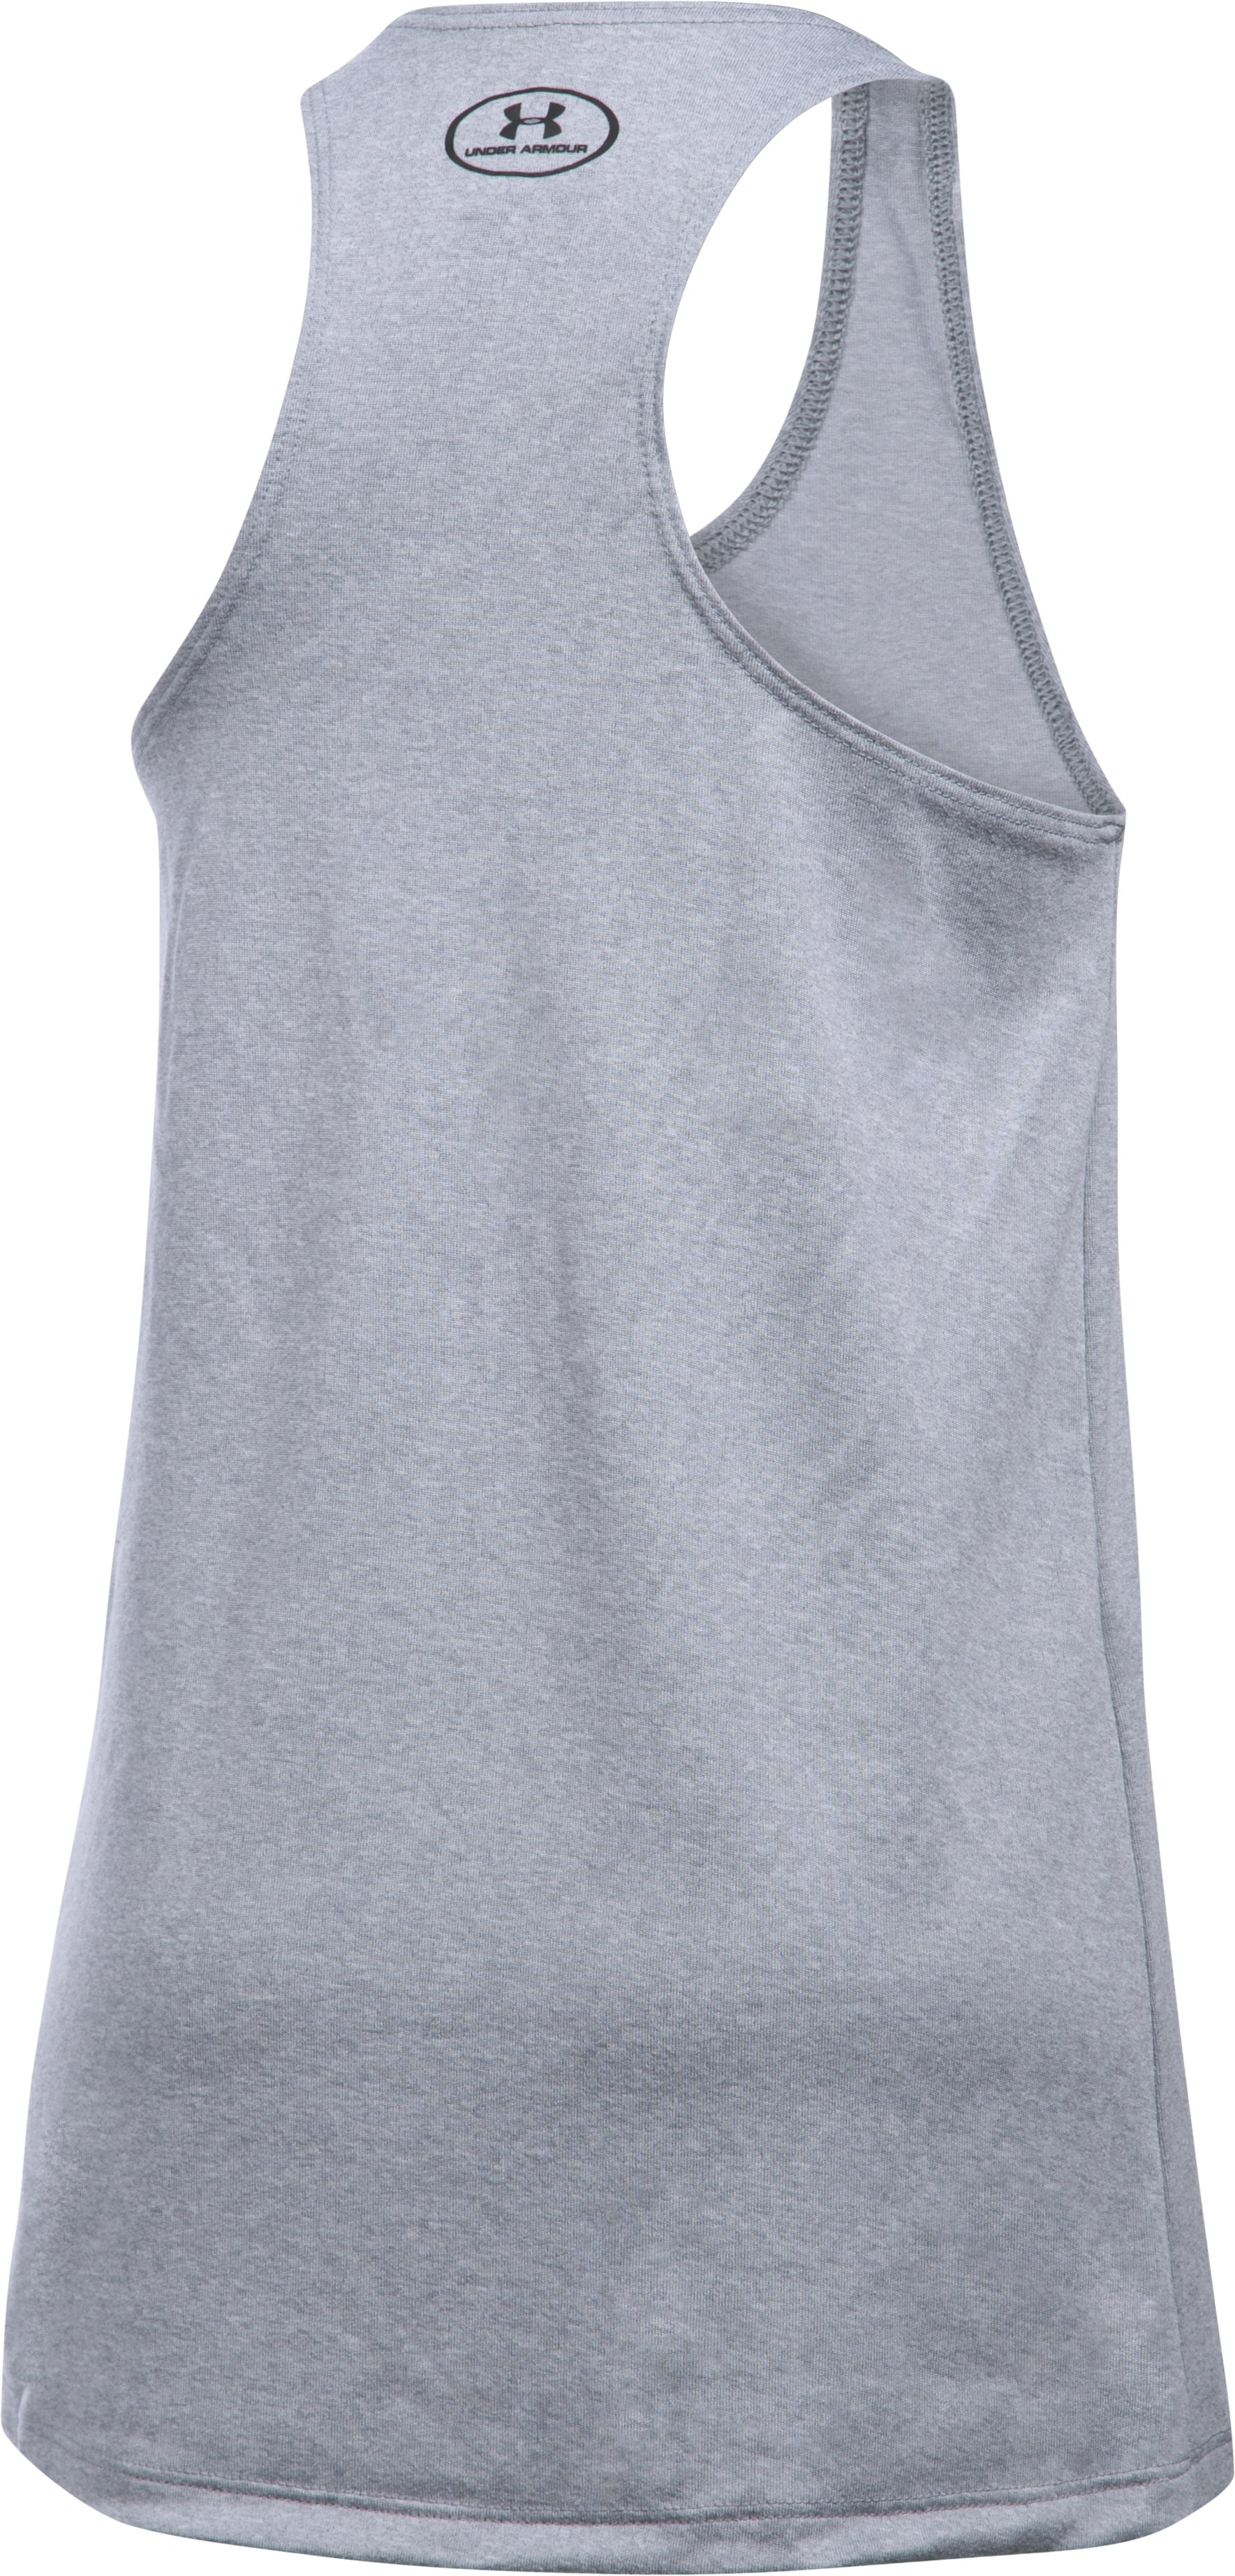 Girls' UA Under Armour Tank, True Gray Heather,